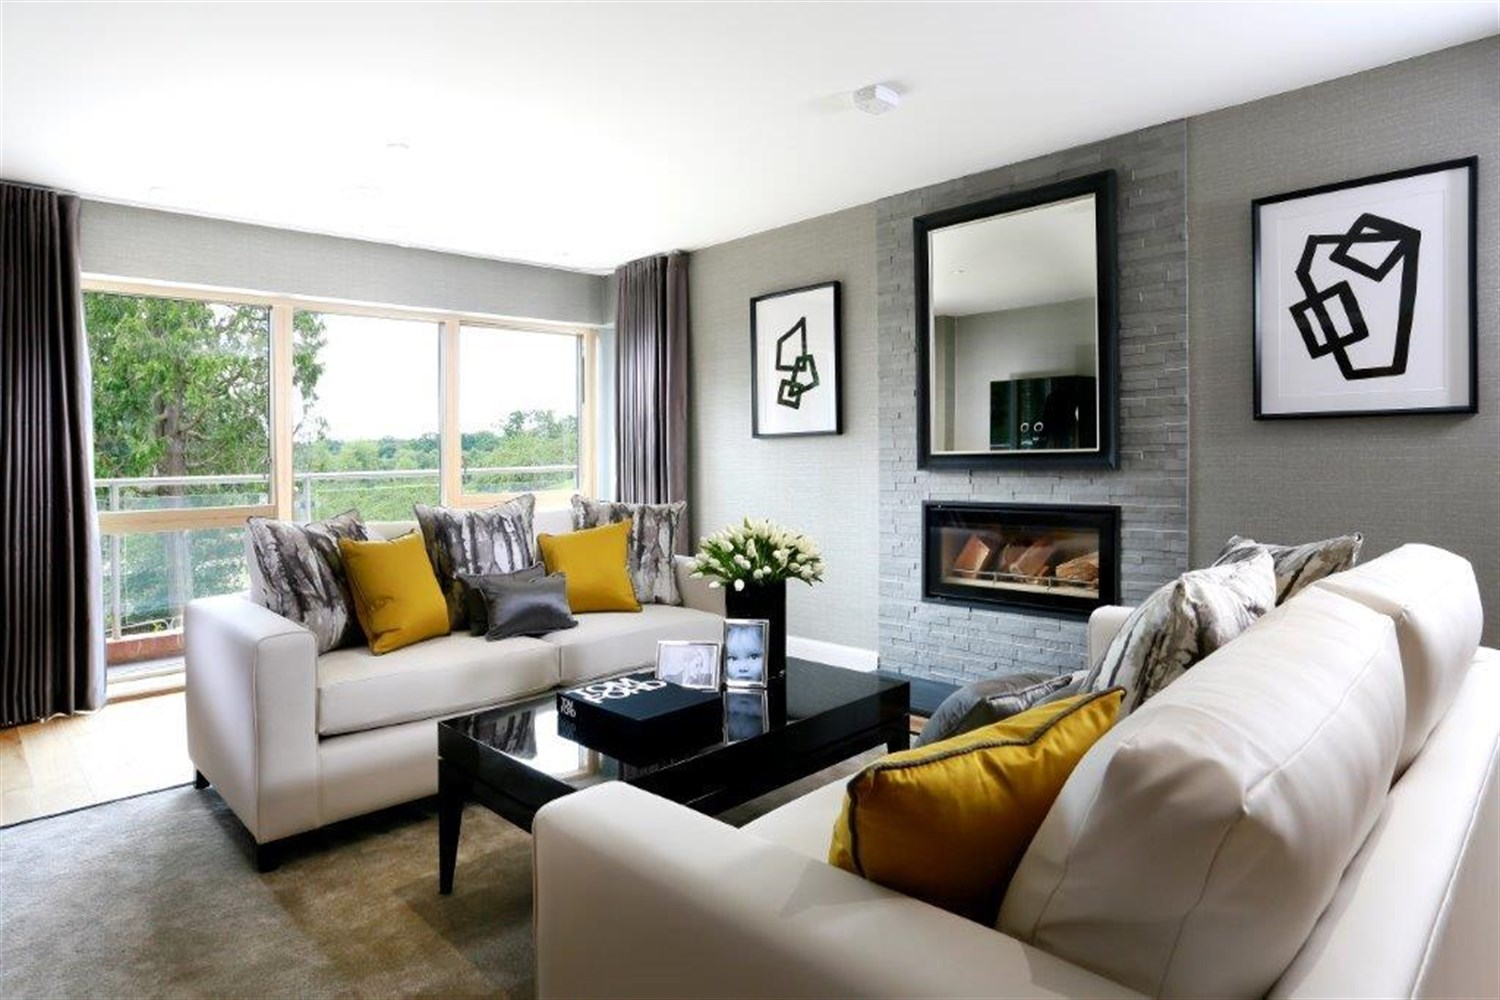 The Birch at Canberra Green - 4 bed detached, Charvil, RG10 9TS